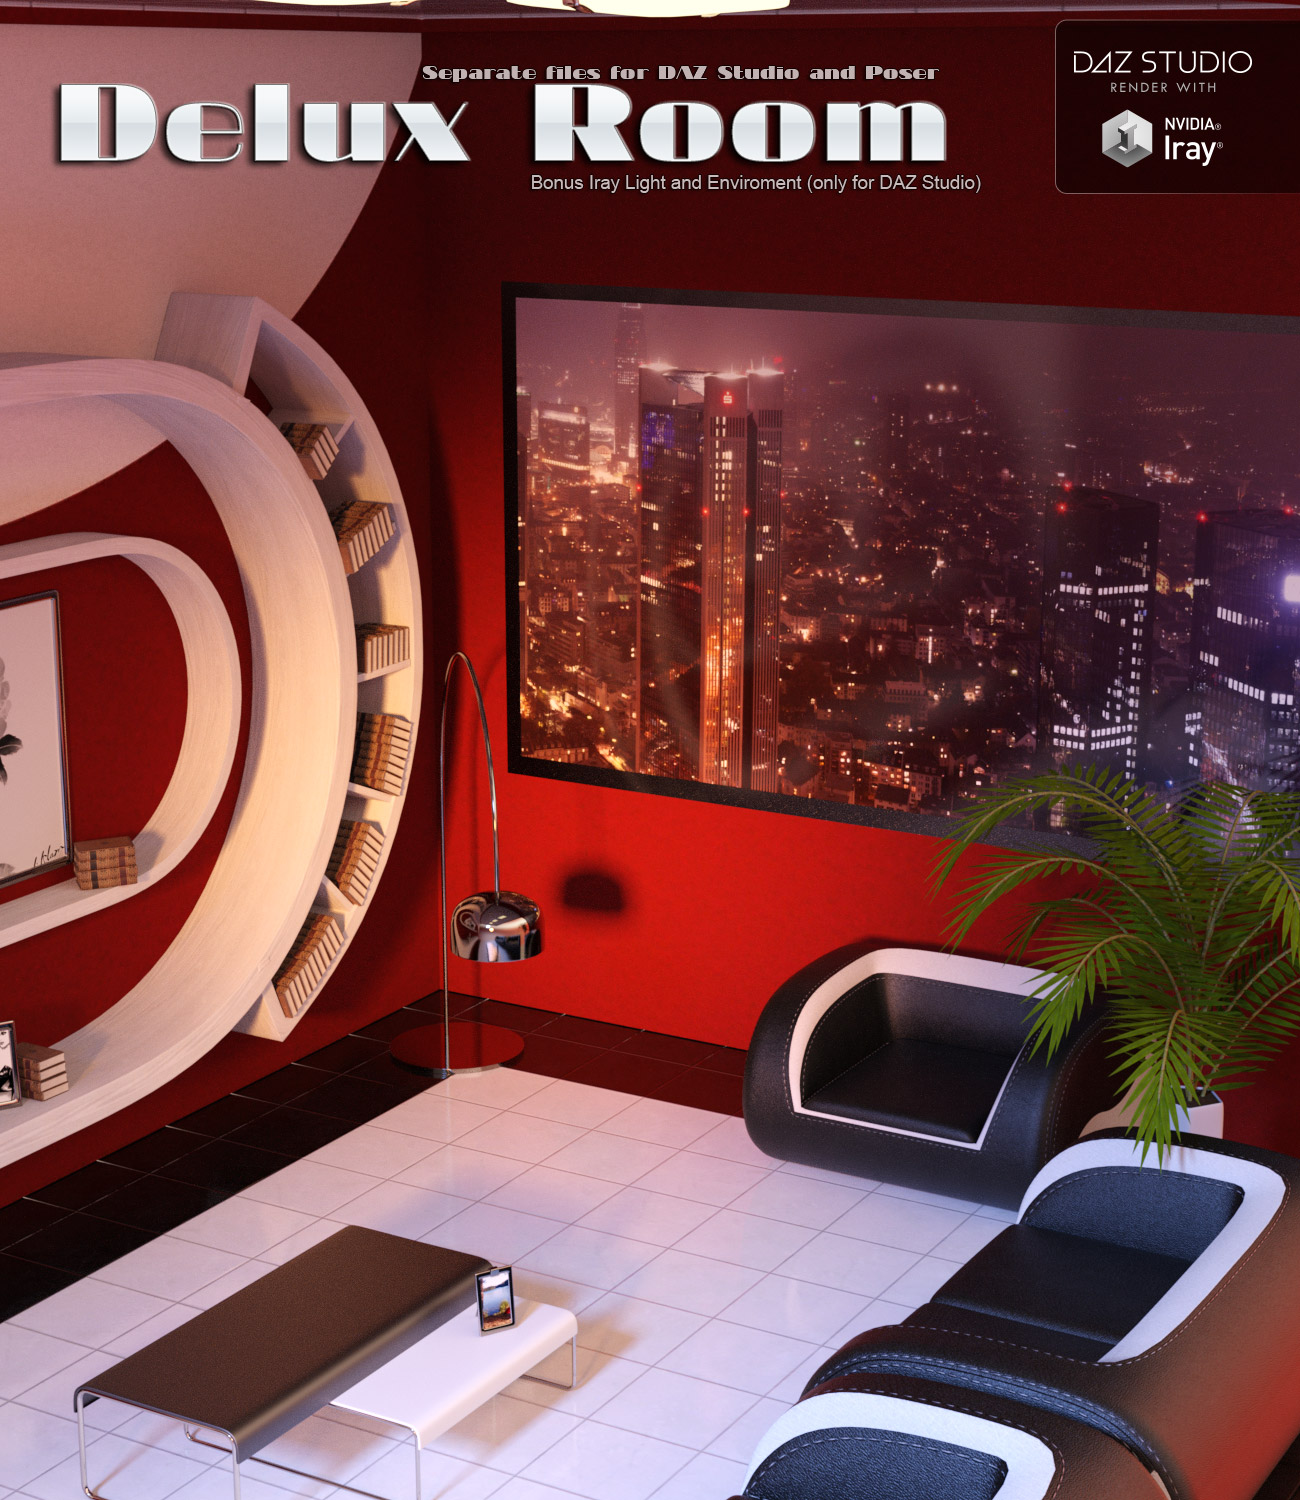 Delux Room by lilflame